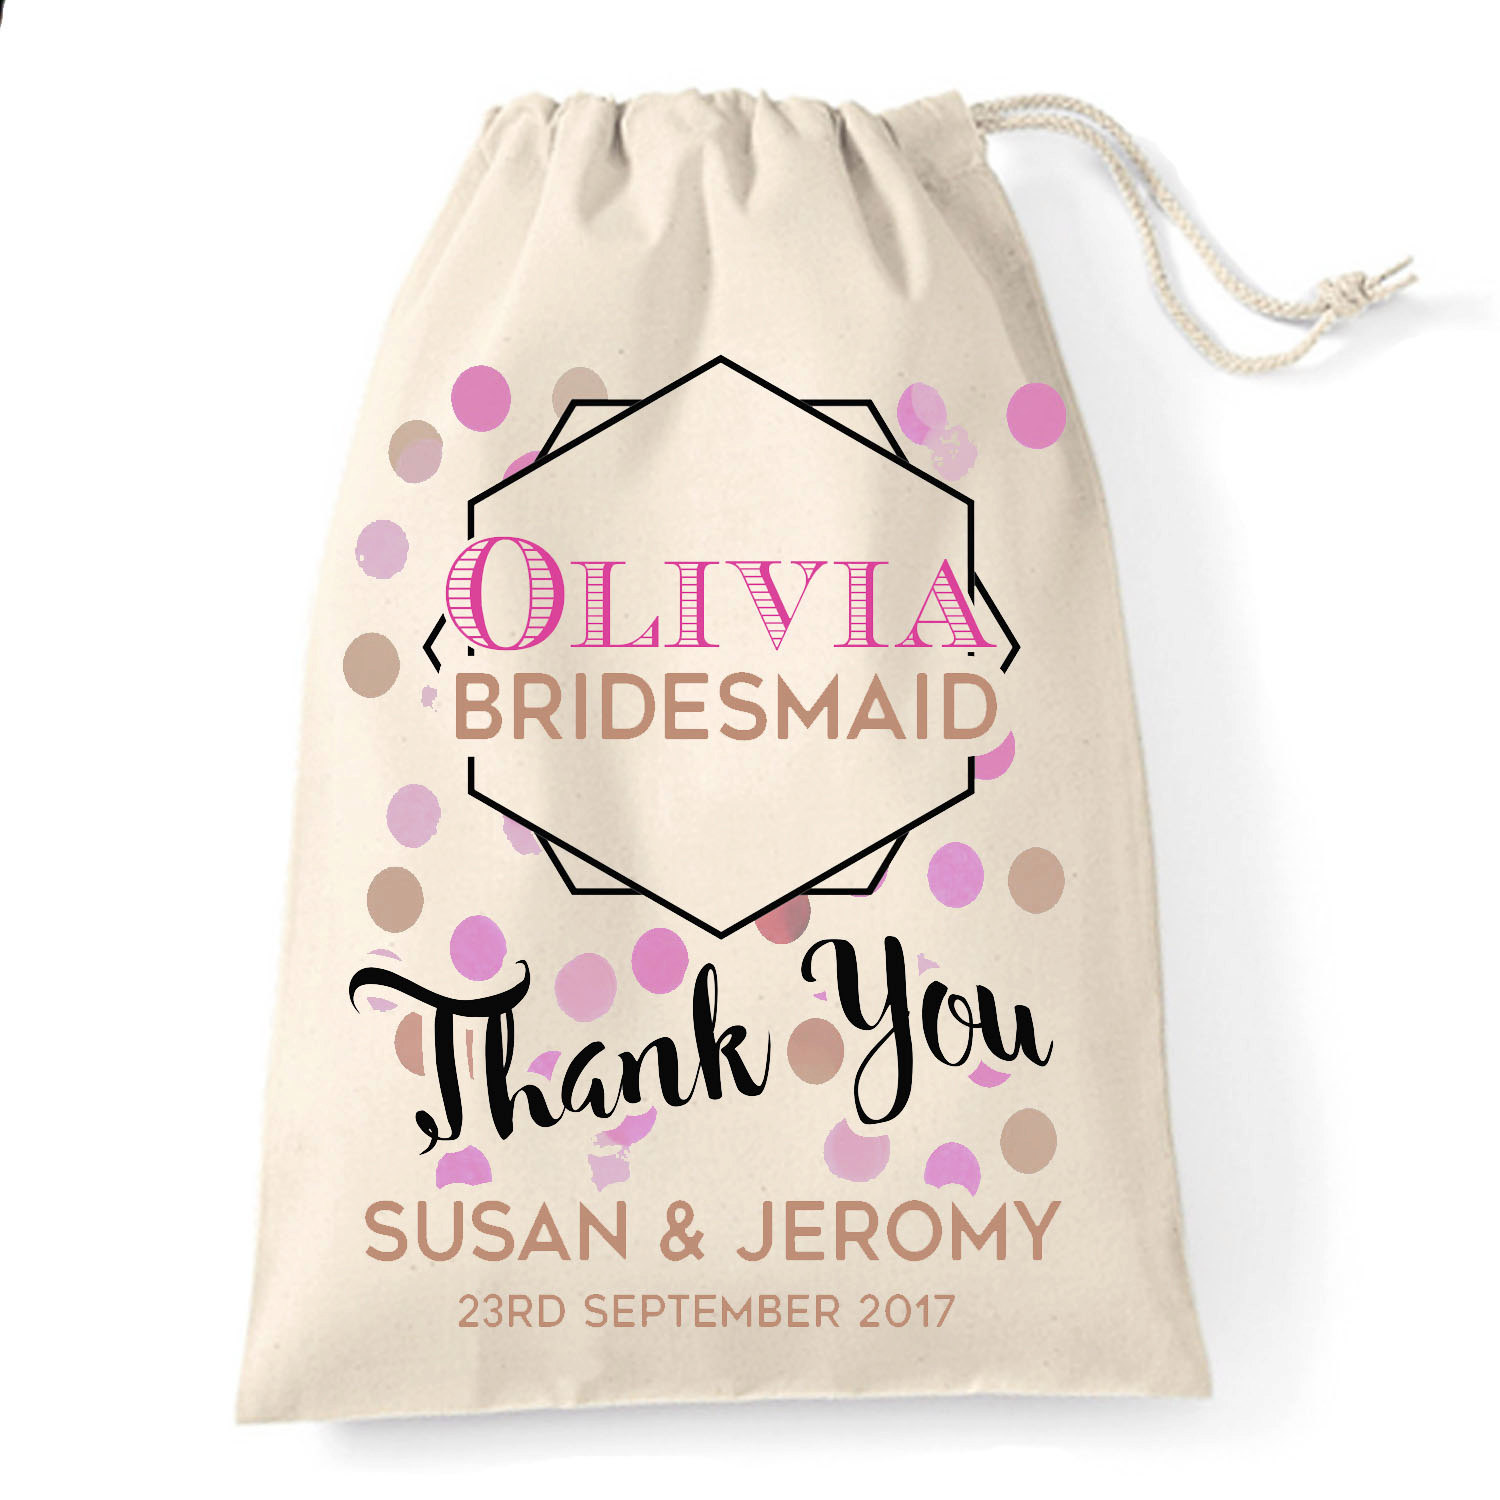 Personalised Wedding Gift Bags : Personalised wedding favour gift bag Bridesmaid thank you